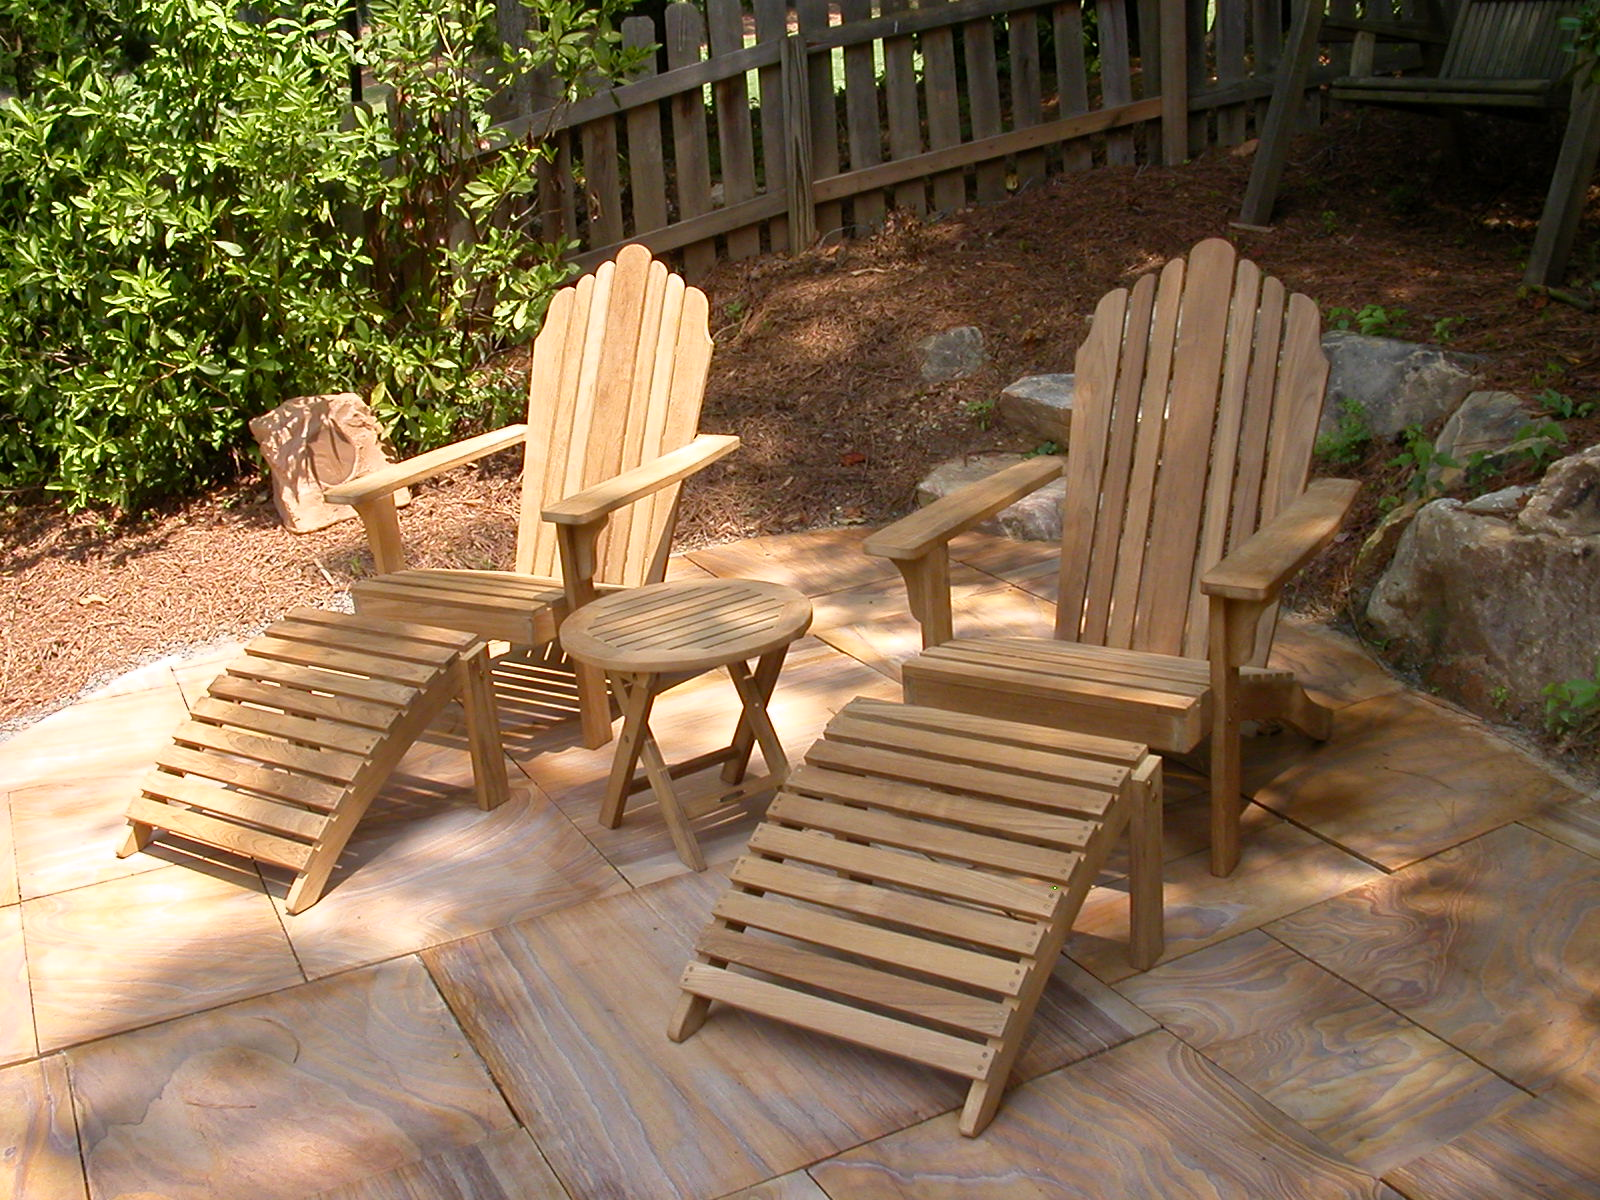 Teak Wood Casual Outdoor Garden Patio Furniture Benches, Chiars U0026 Tables.